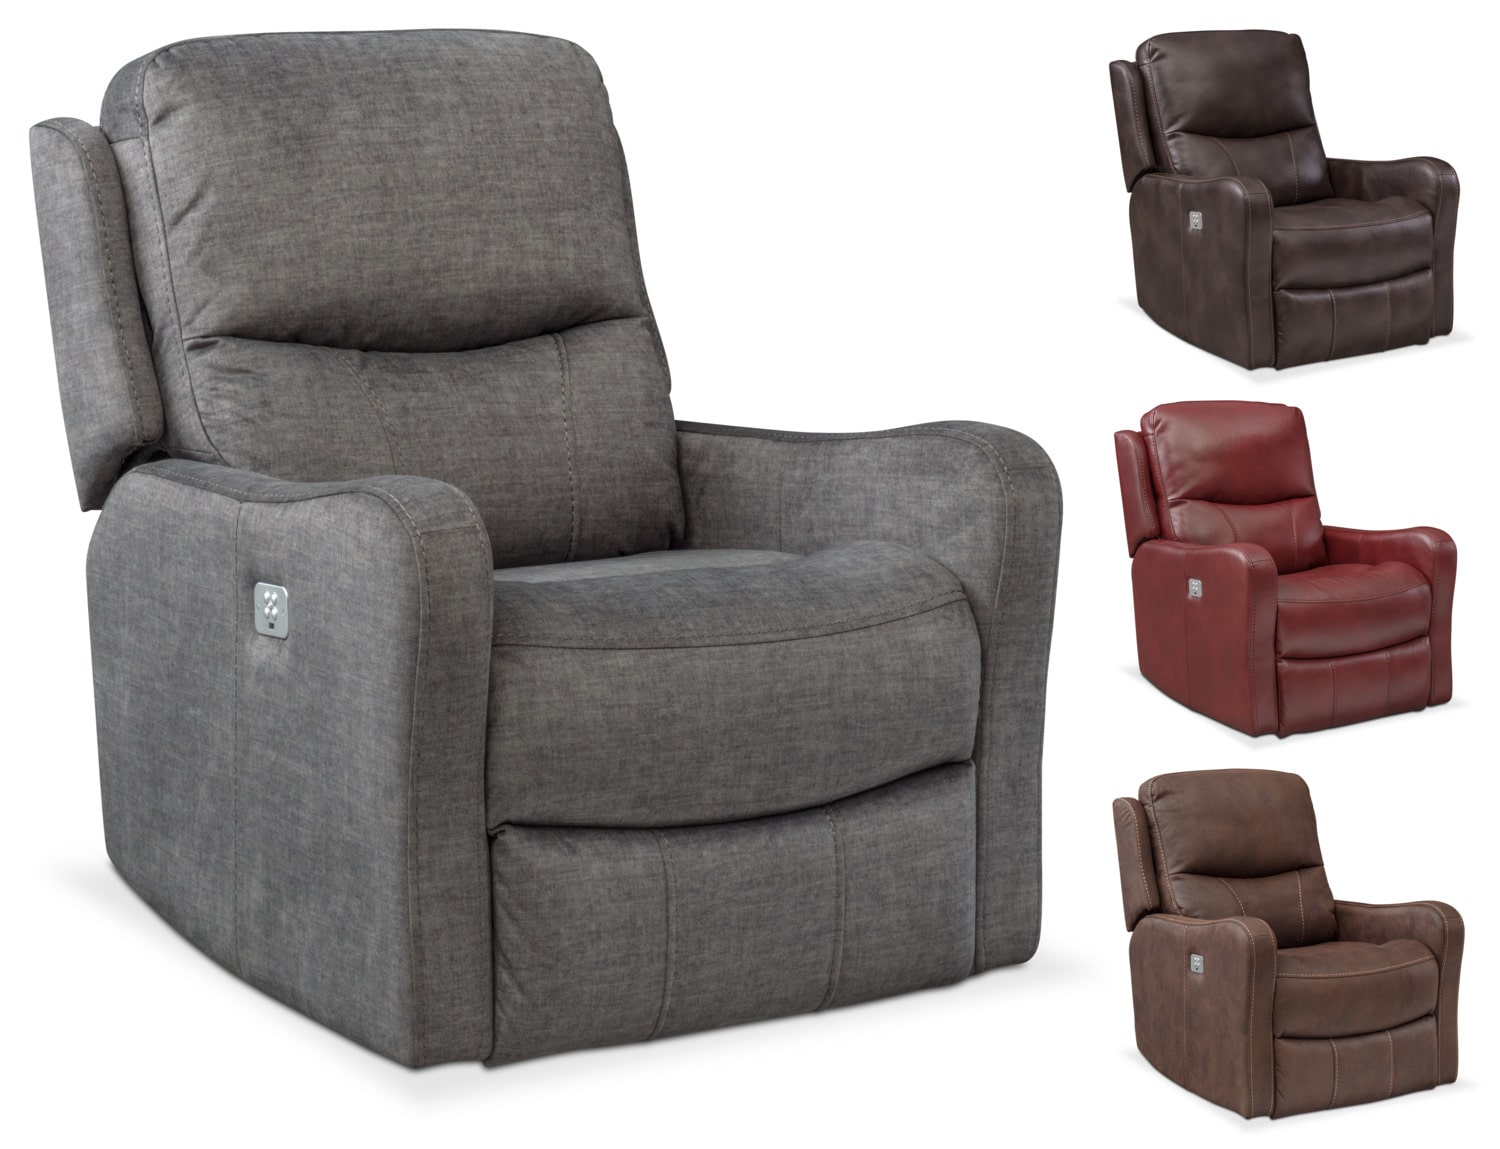 The Cabo Dual Power Recliner Collection